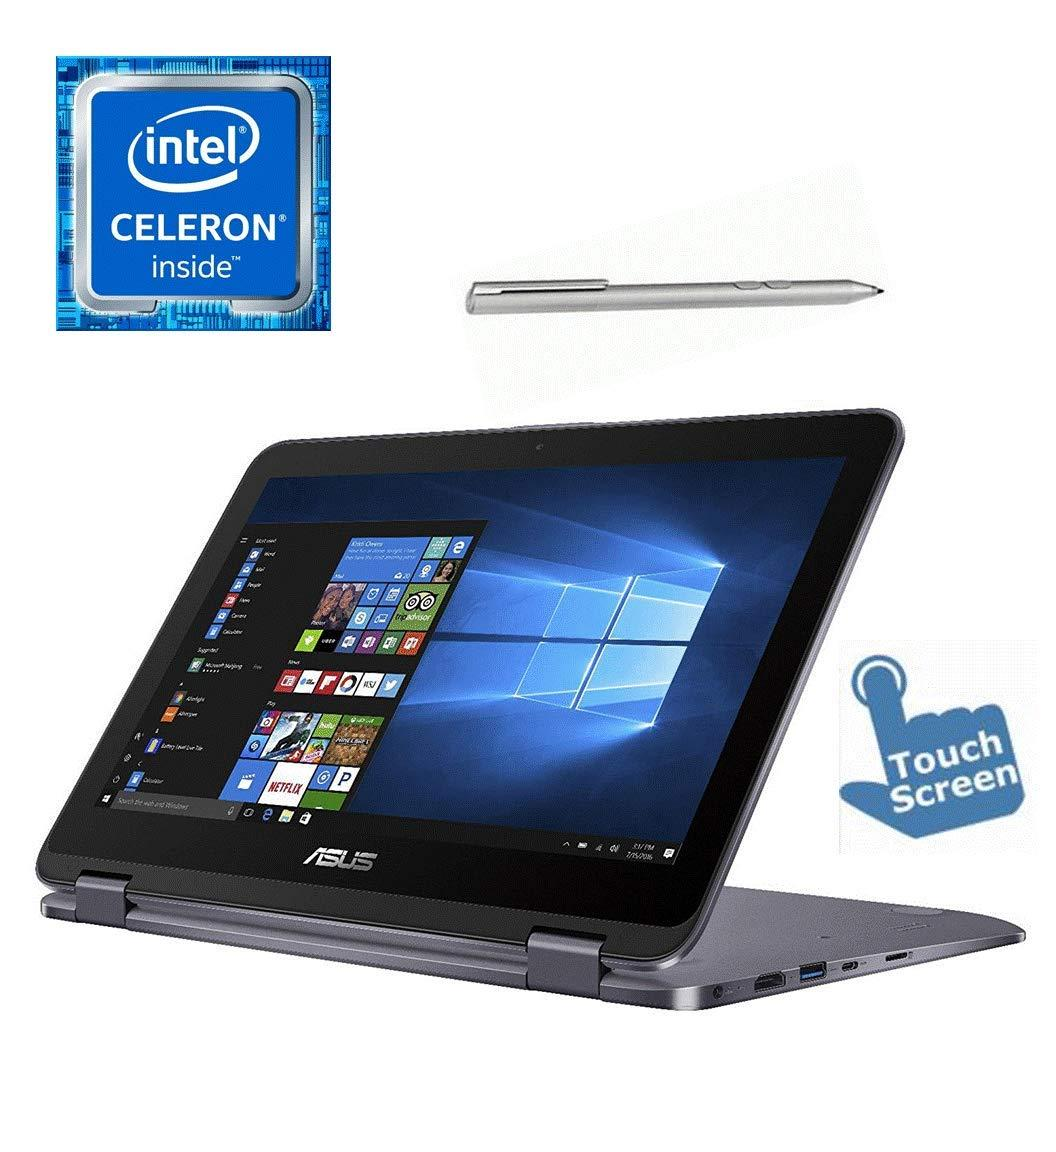 2-in-1 Laptops for sale - Tablet Notebook prices, brands & specs in